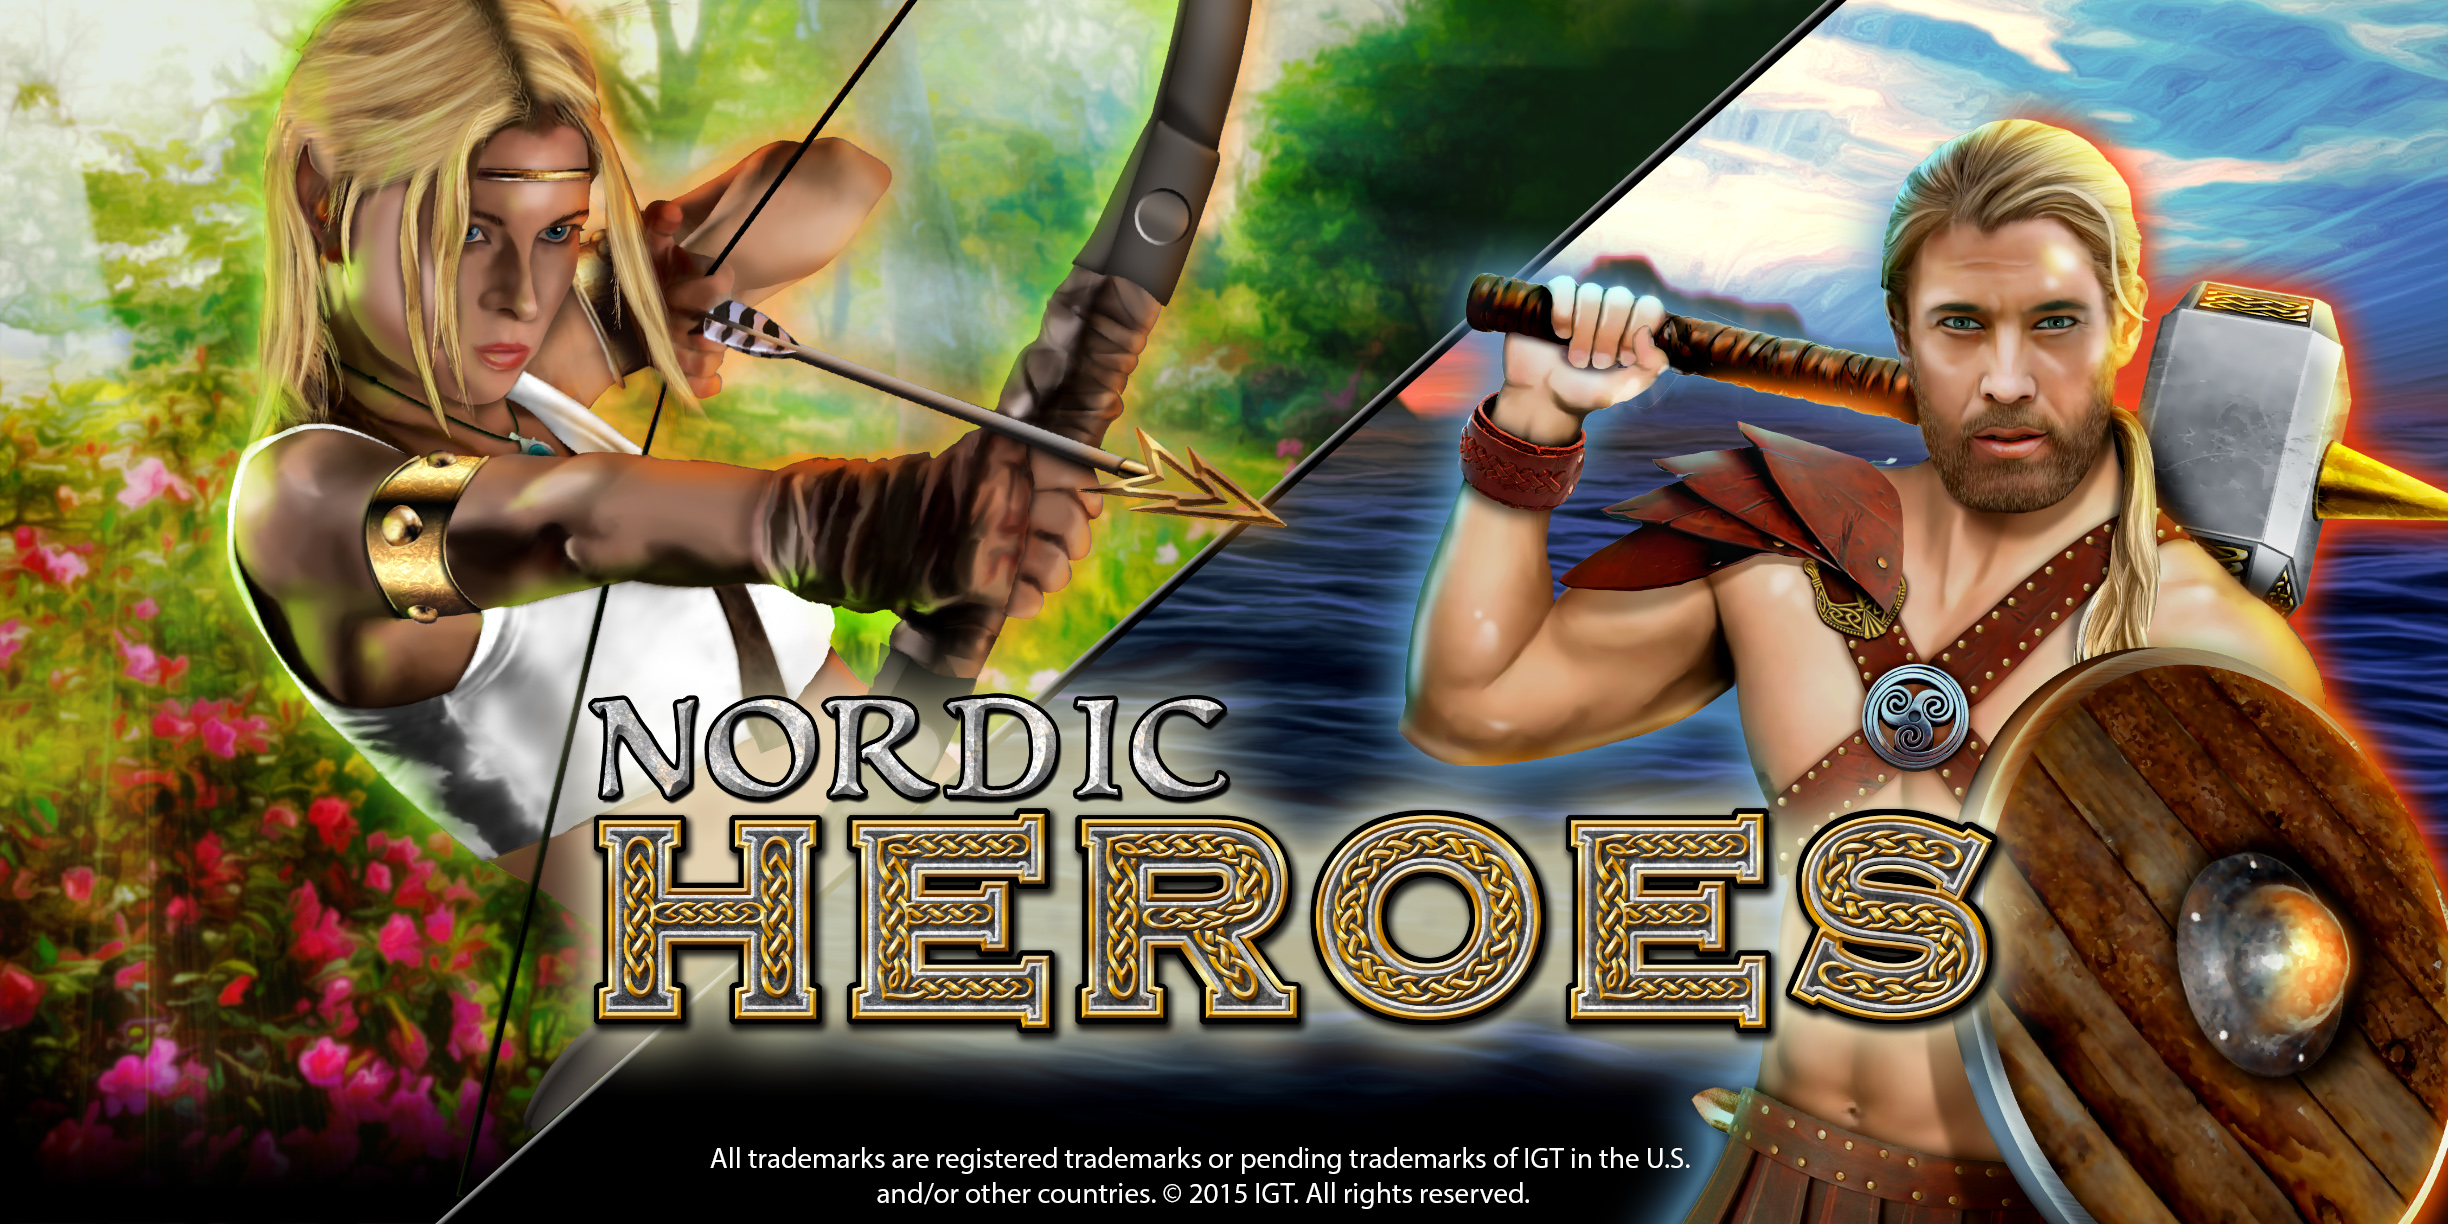 Slot machine review: Nordic Heroes